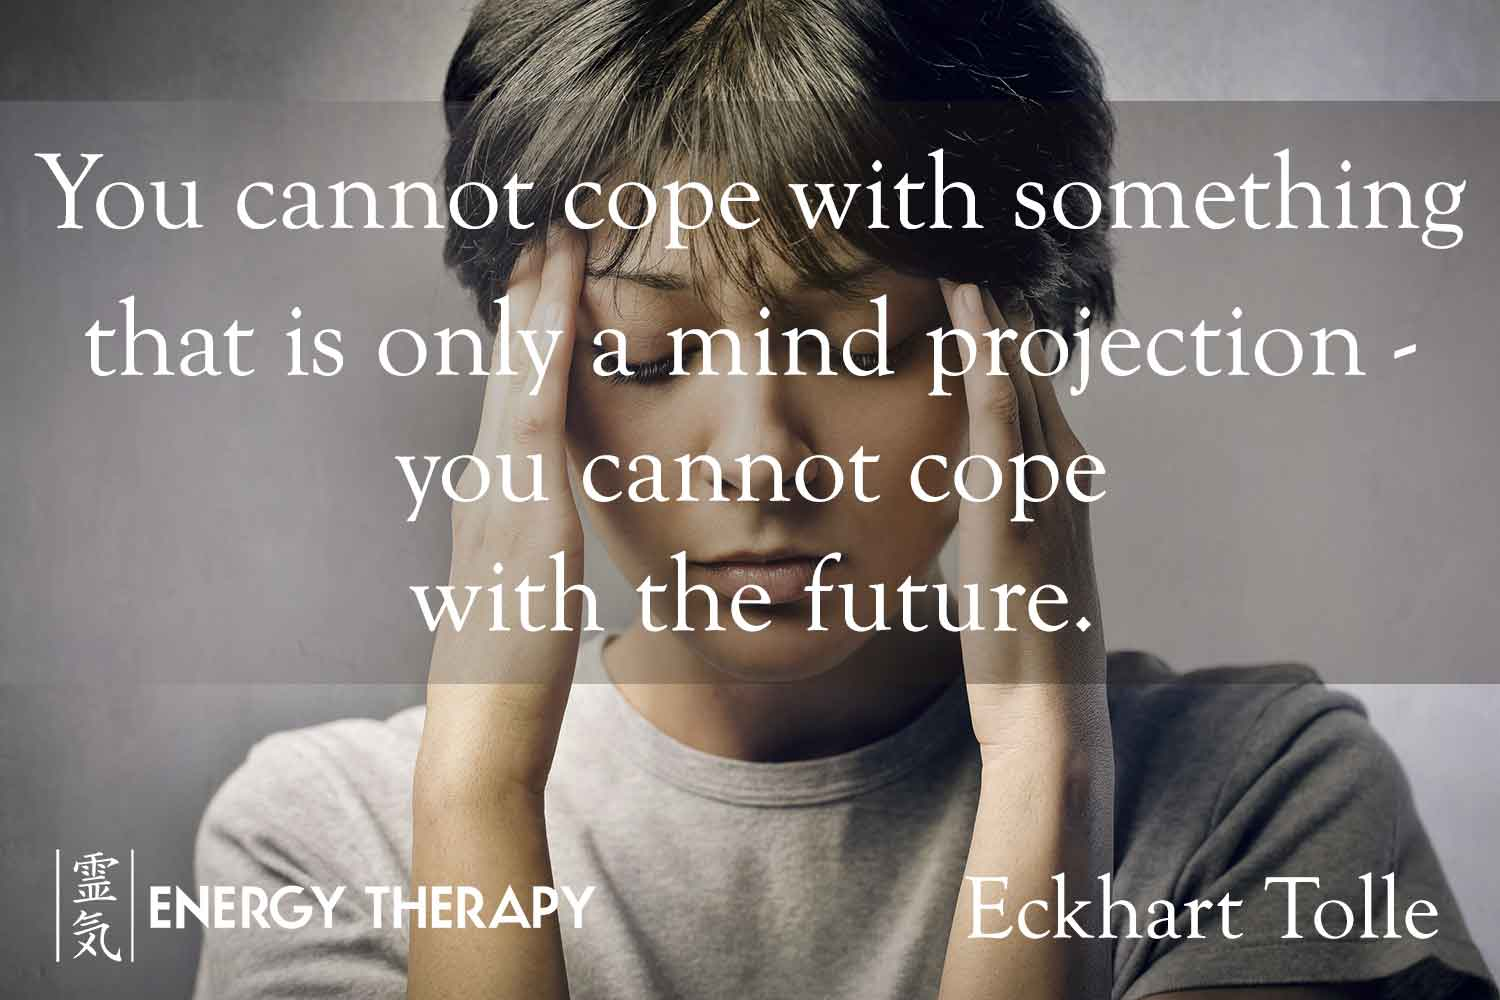 eckhart tolle - you cannot cope with the future